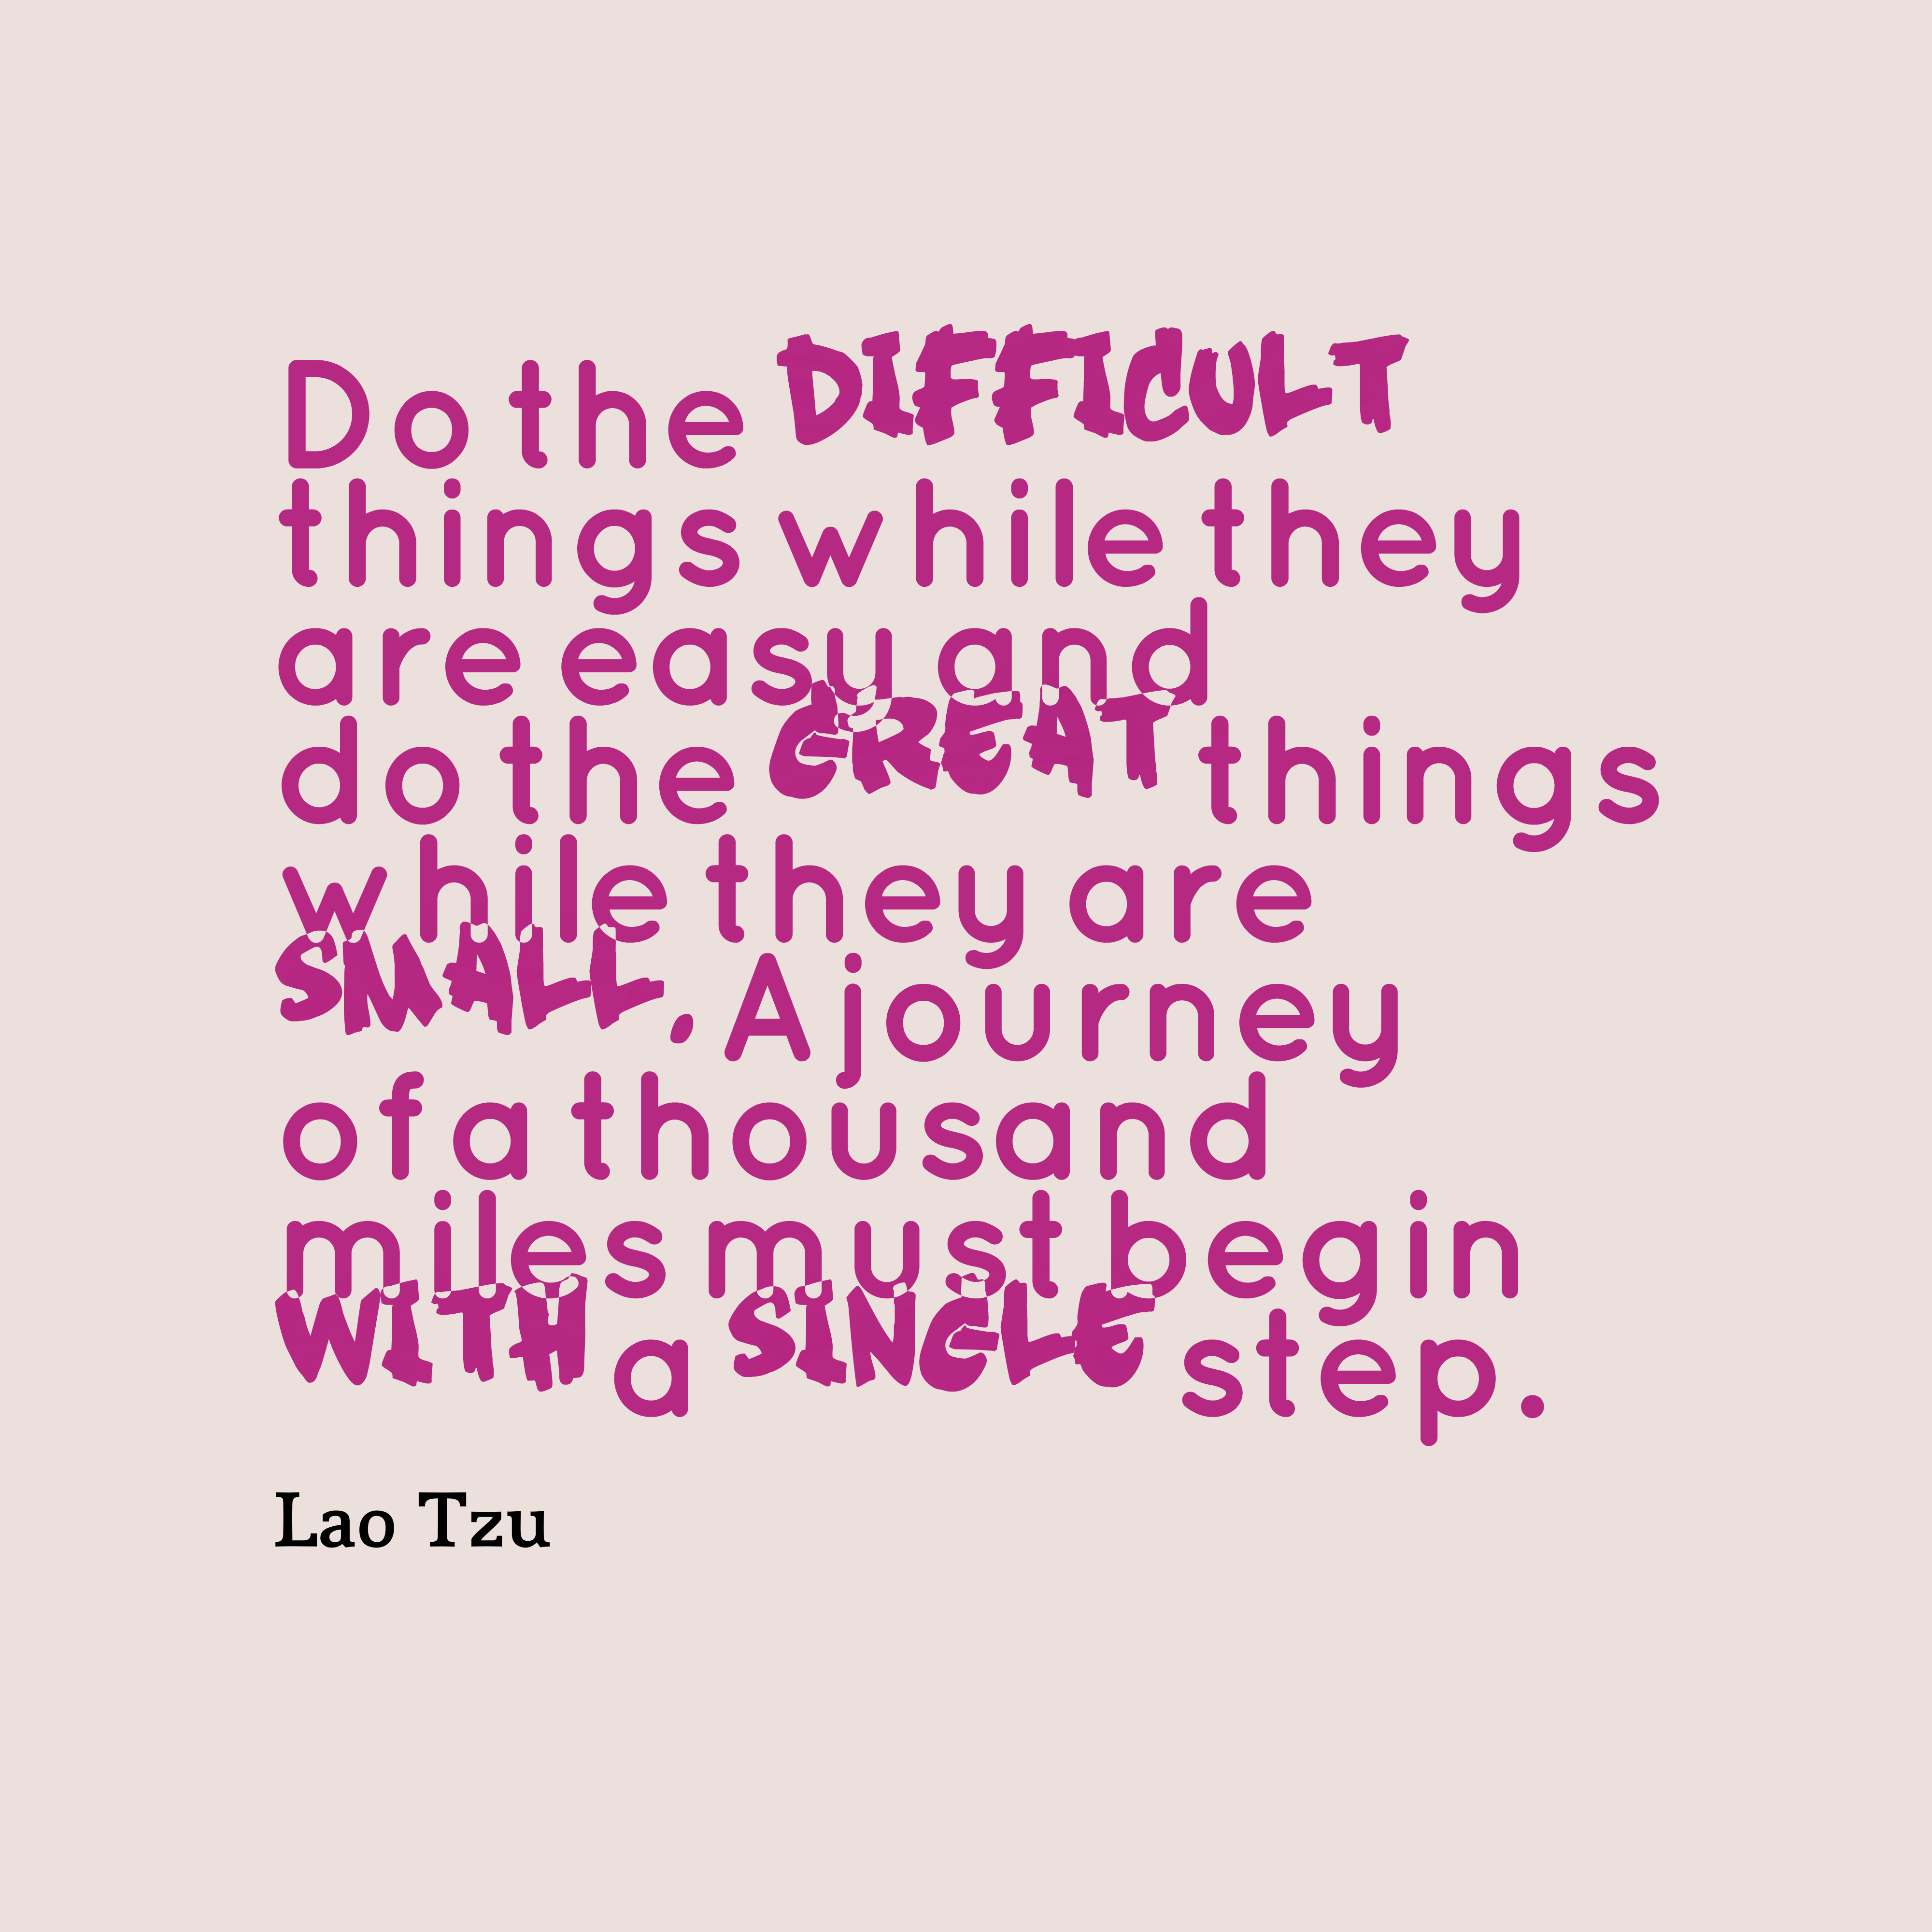 Quotes image of Do the difficult things while they are easy and do the great things while they are small. A journey of a thousand miles must begin with a single step.